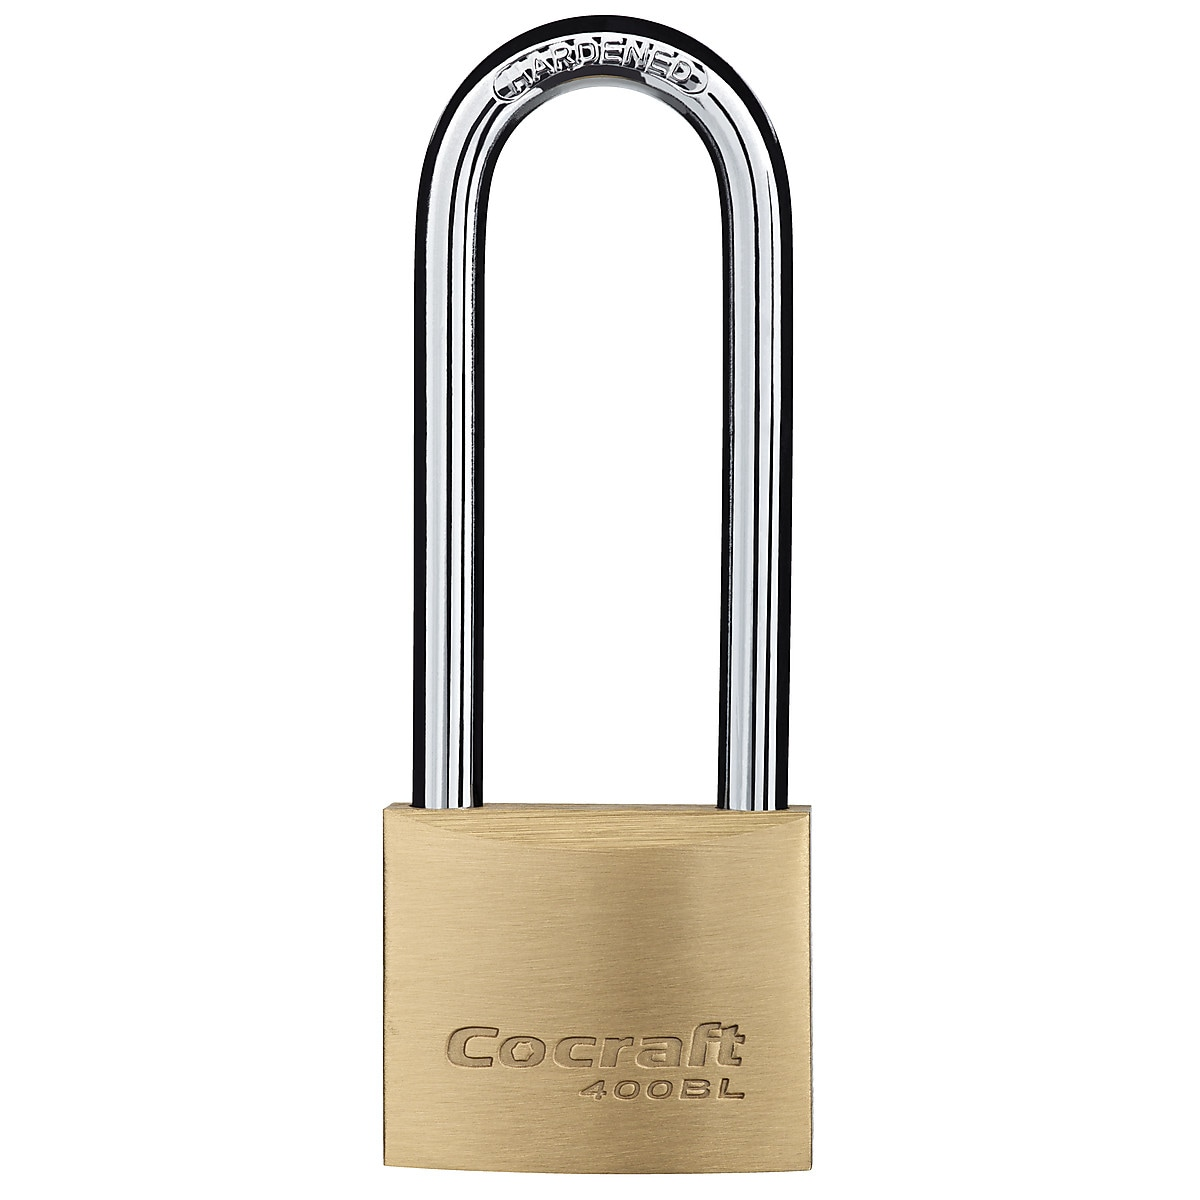 Cocraft Long Shackle Padlock